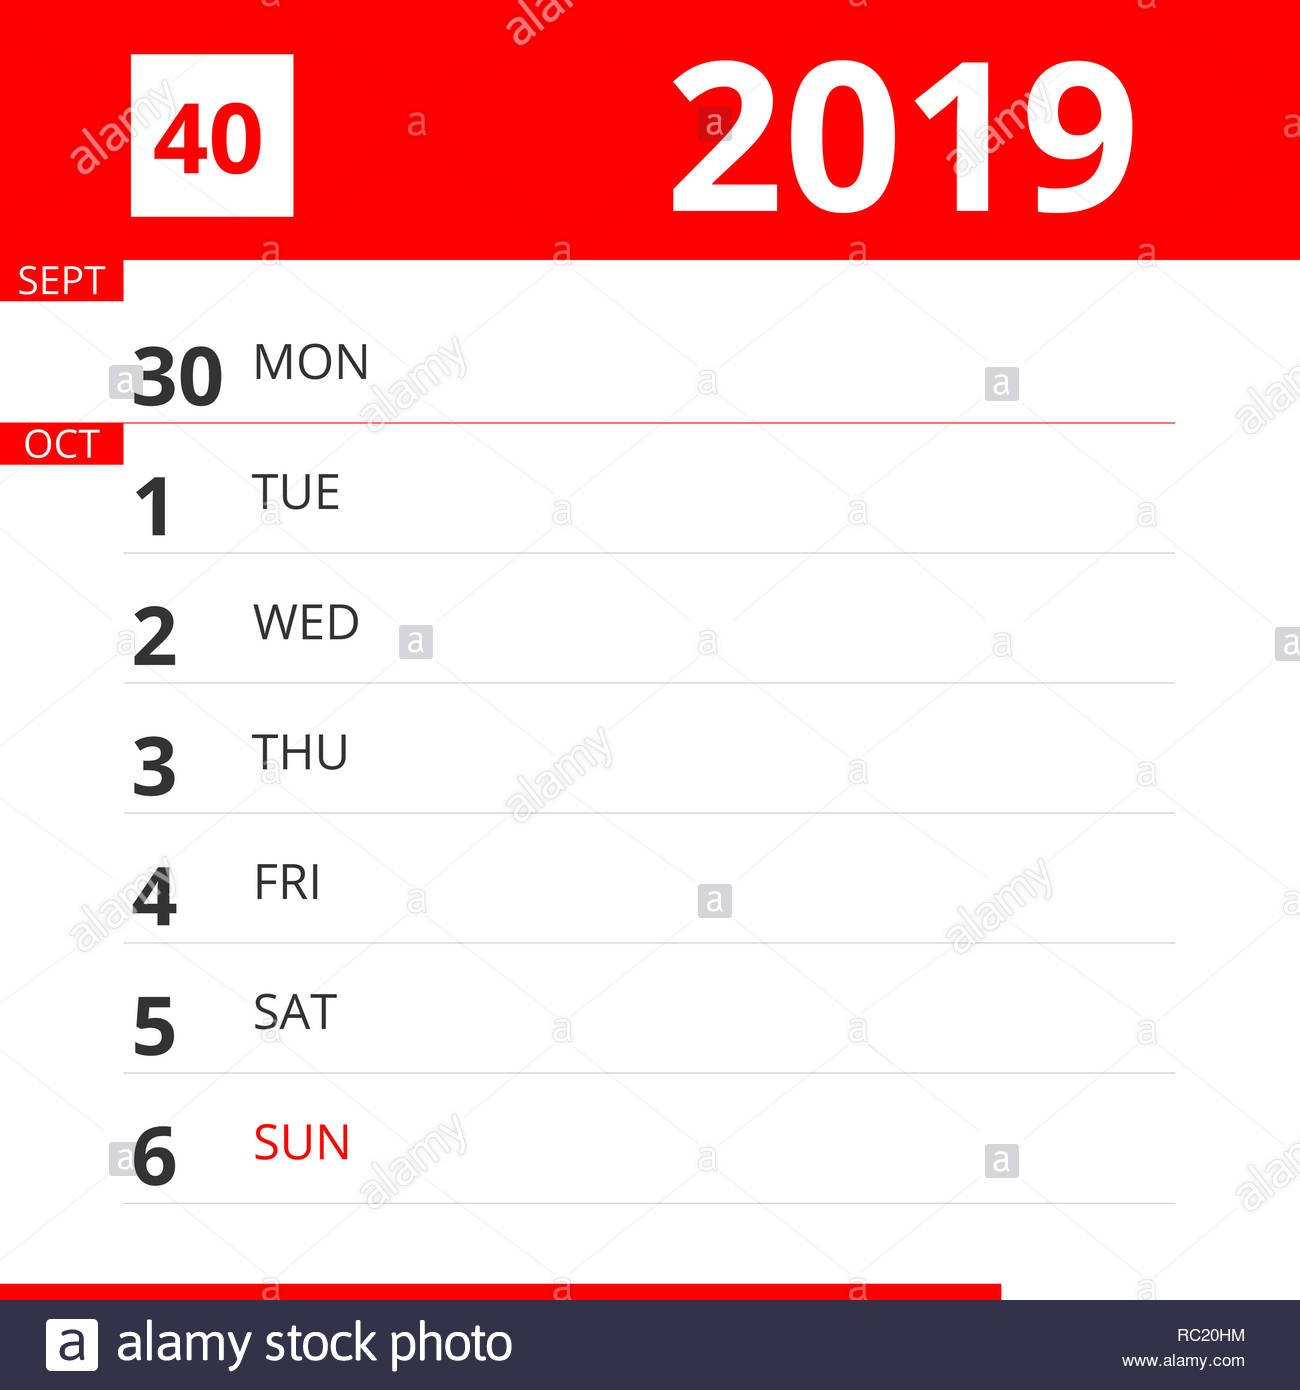 Calendar Planner For Week 40 In 2019, Ends October 6, 2019 Stock Calendar Week 40 2019